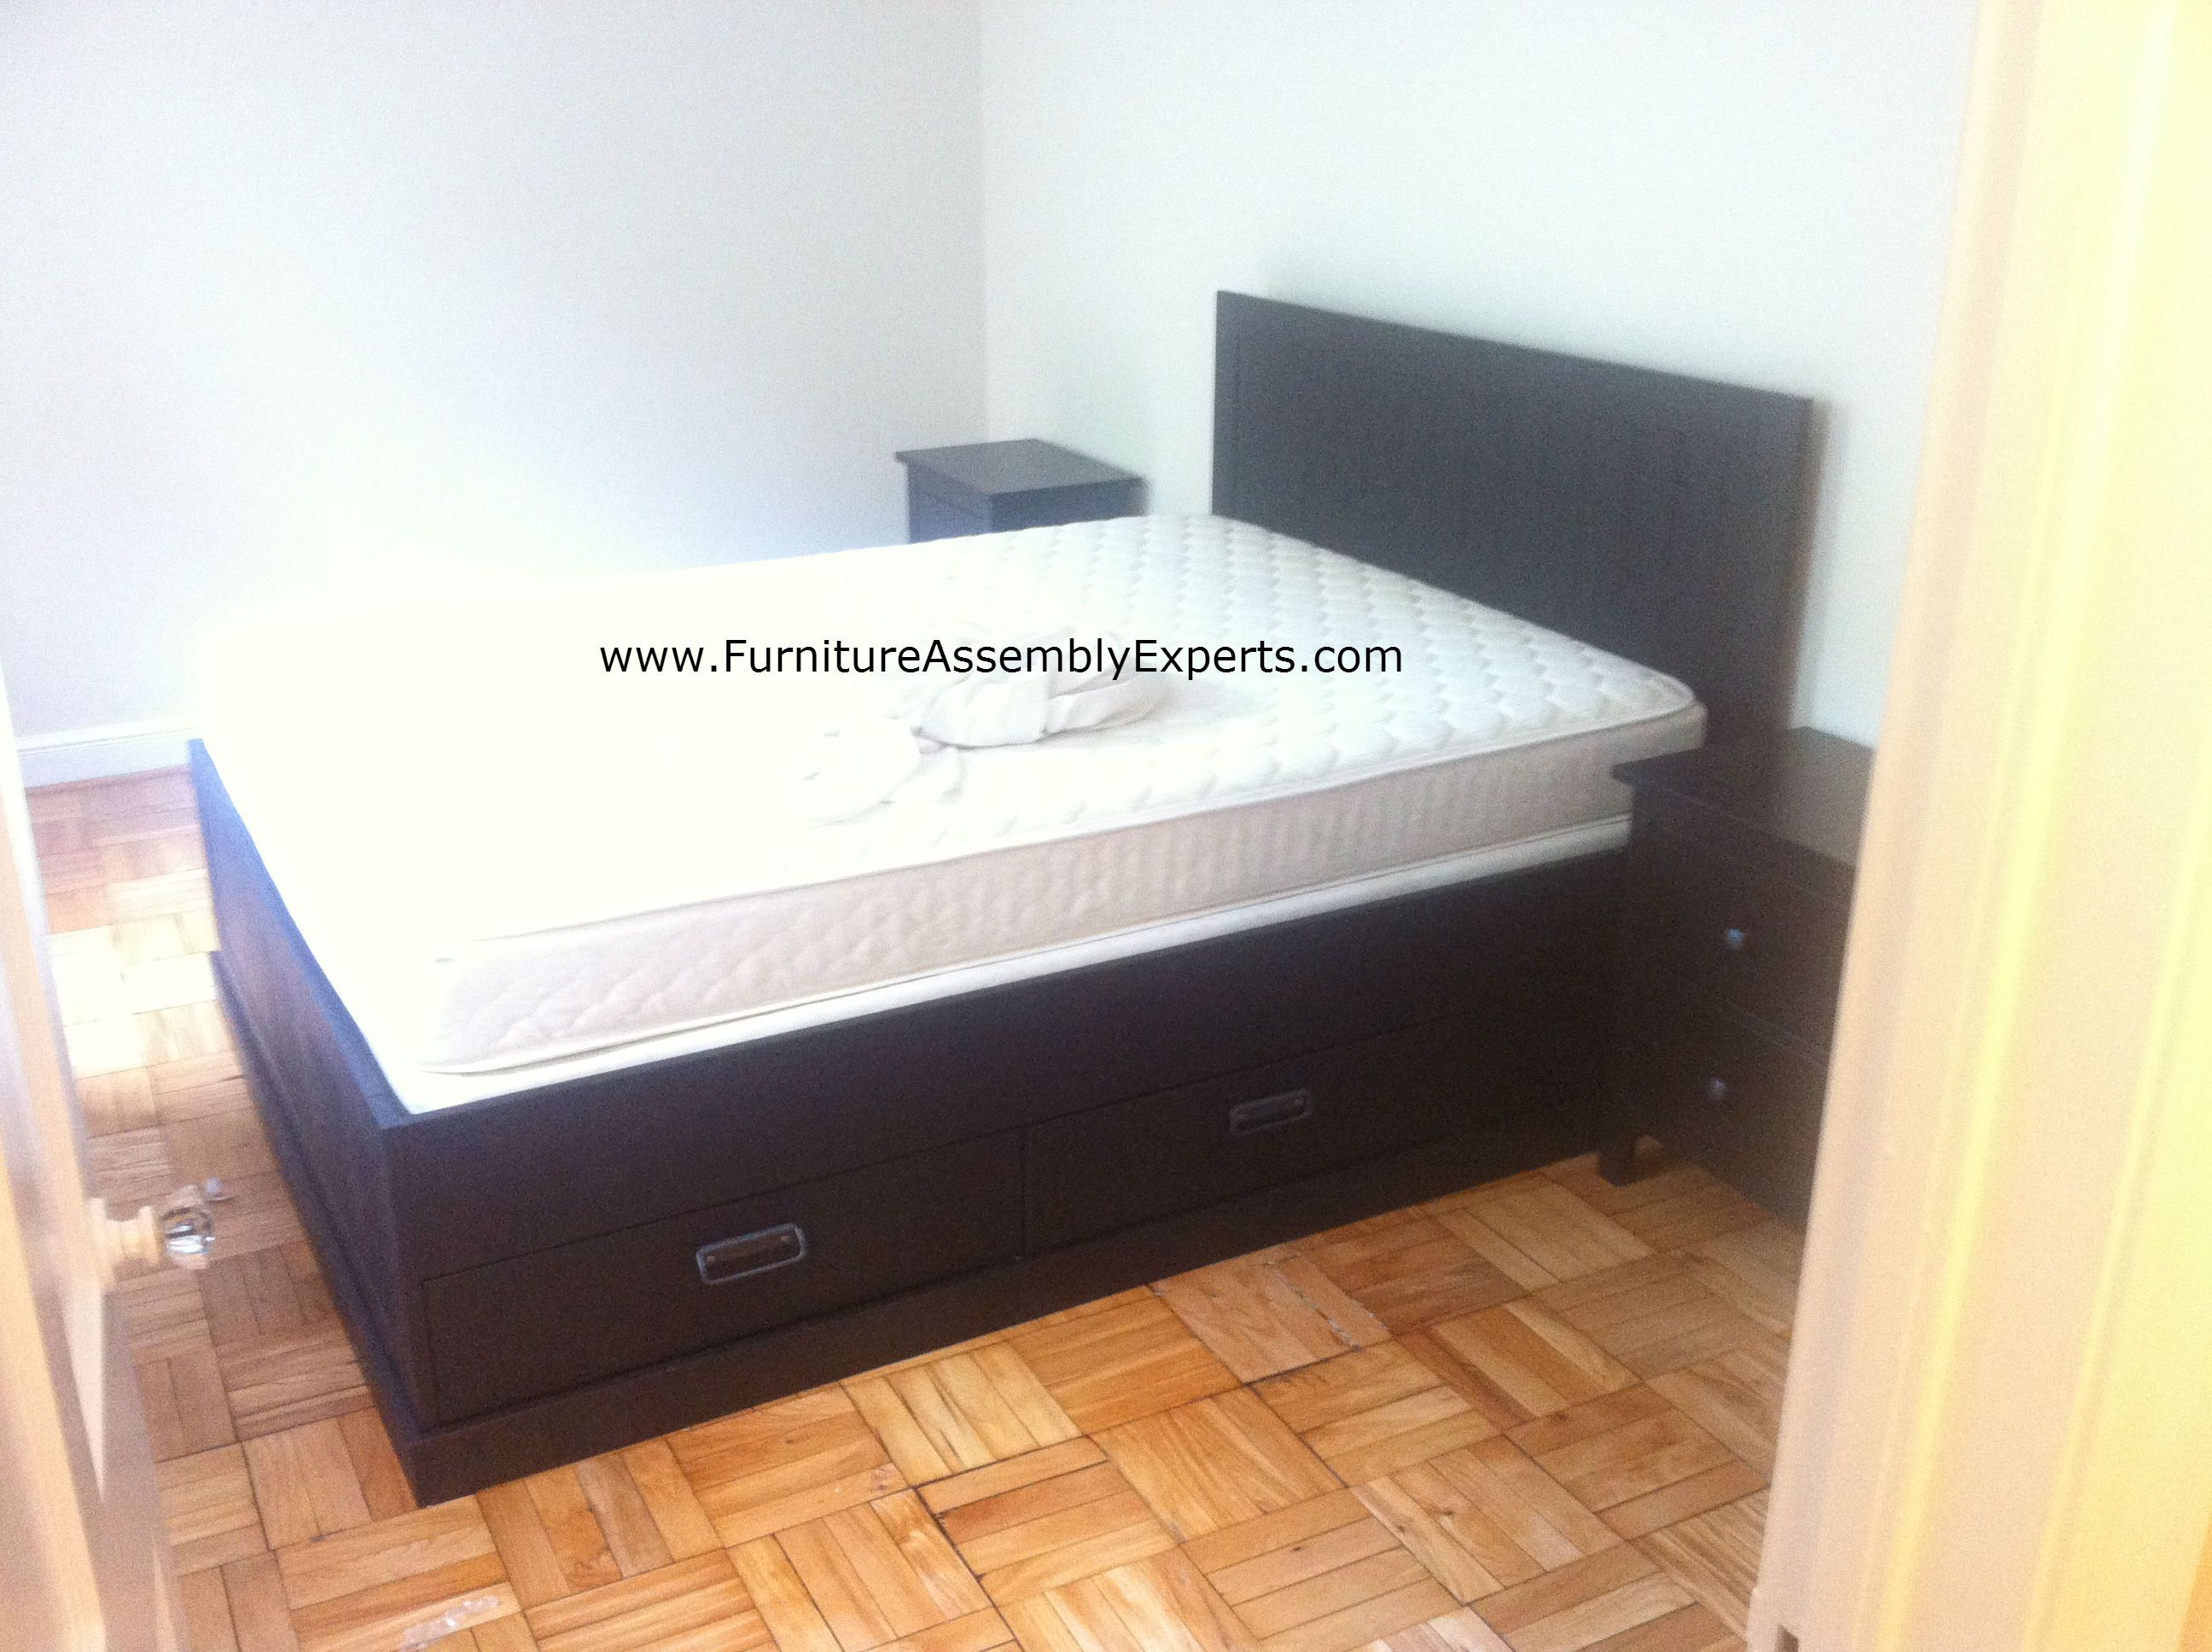 Ikea Fjell Storage Bed Assembled In Arlington Va For A